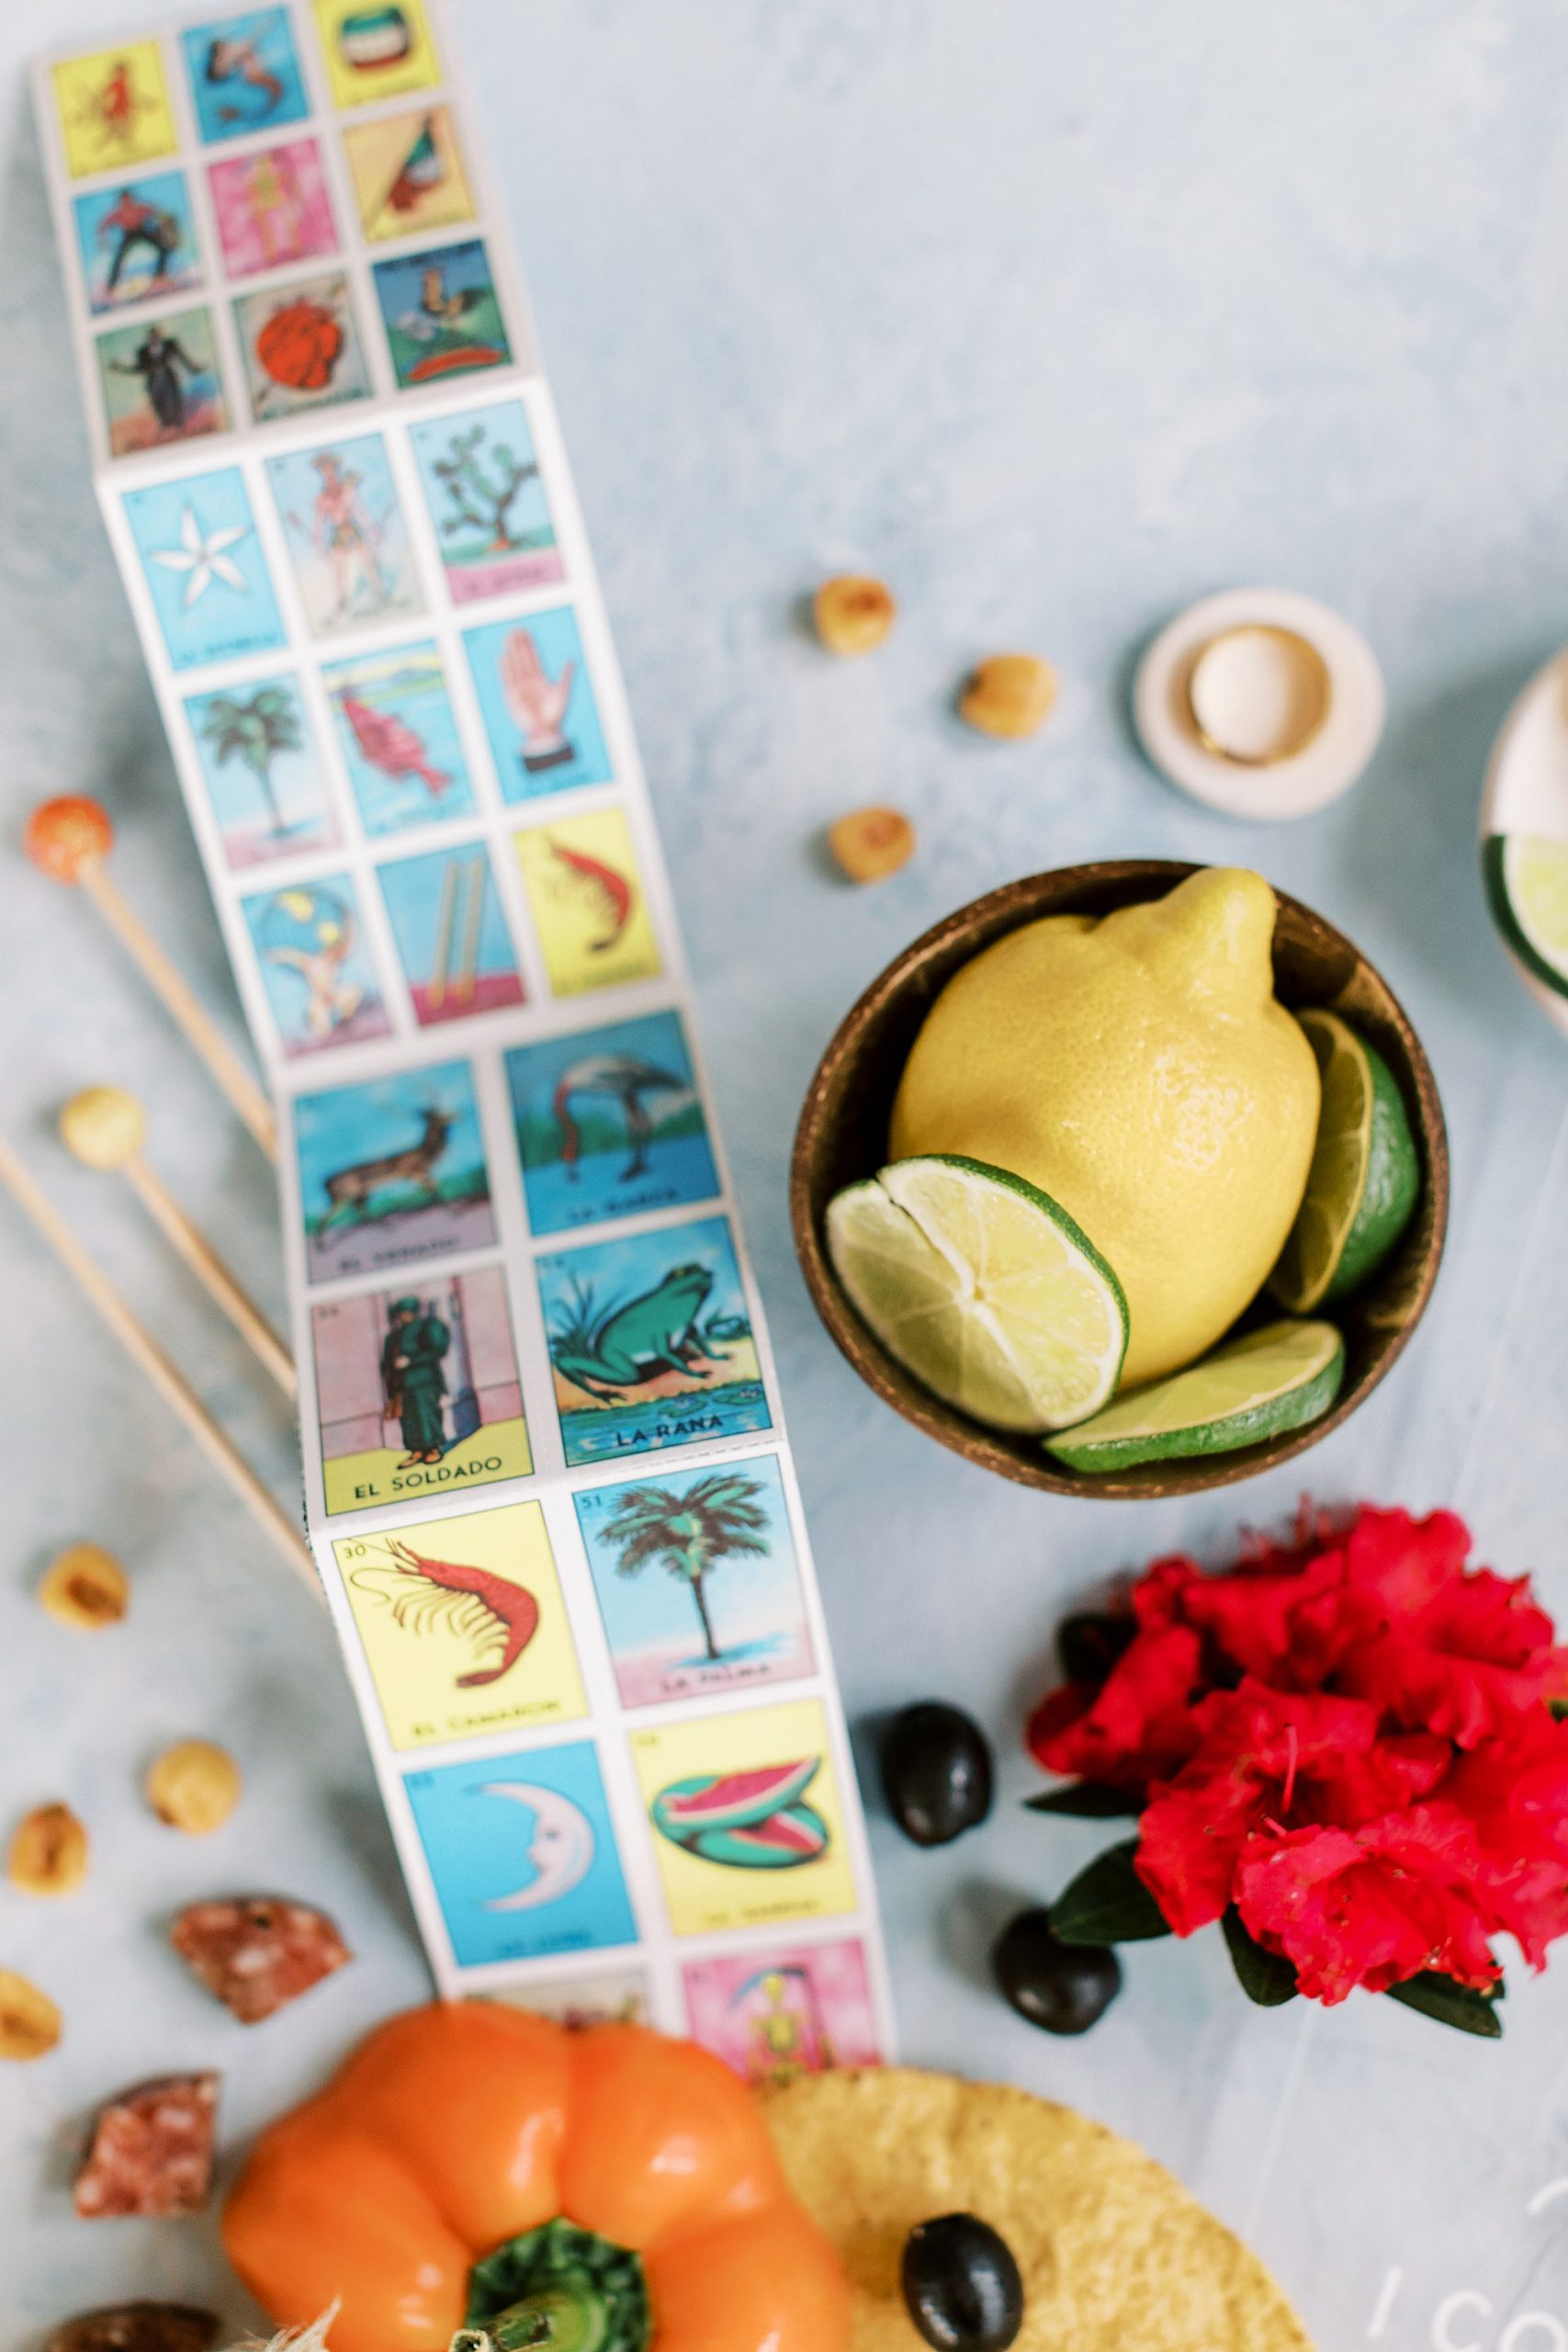 Cinco De Mayo Inspiration for Your FIesta - Party Crush Studio and Ashley Baumgartner_0045.jpg